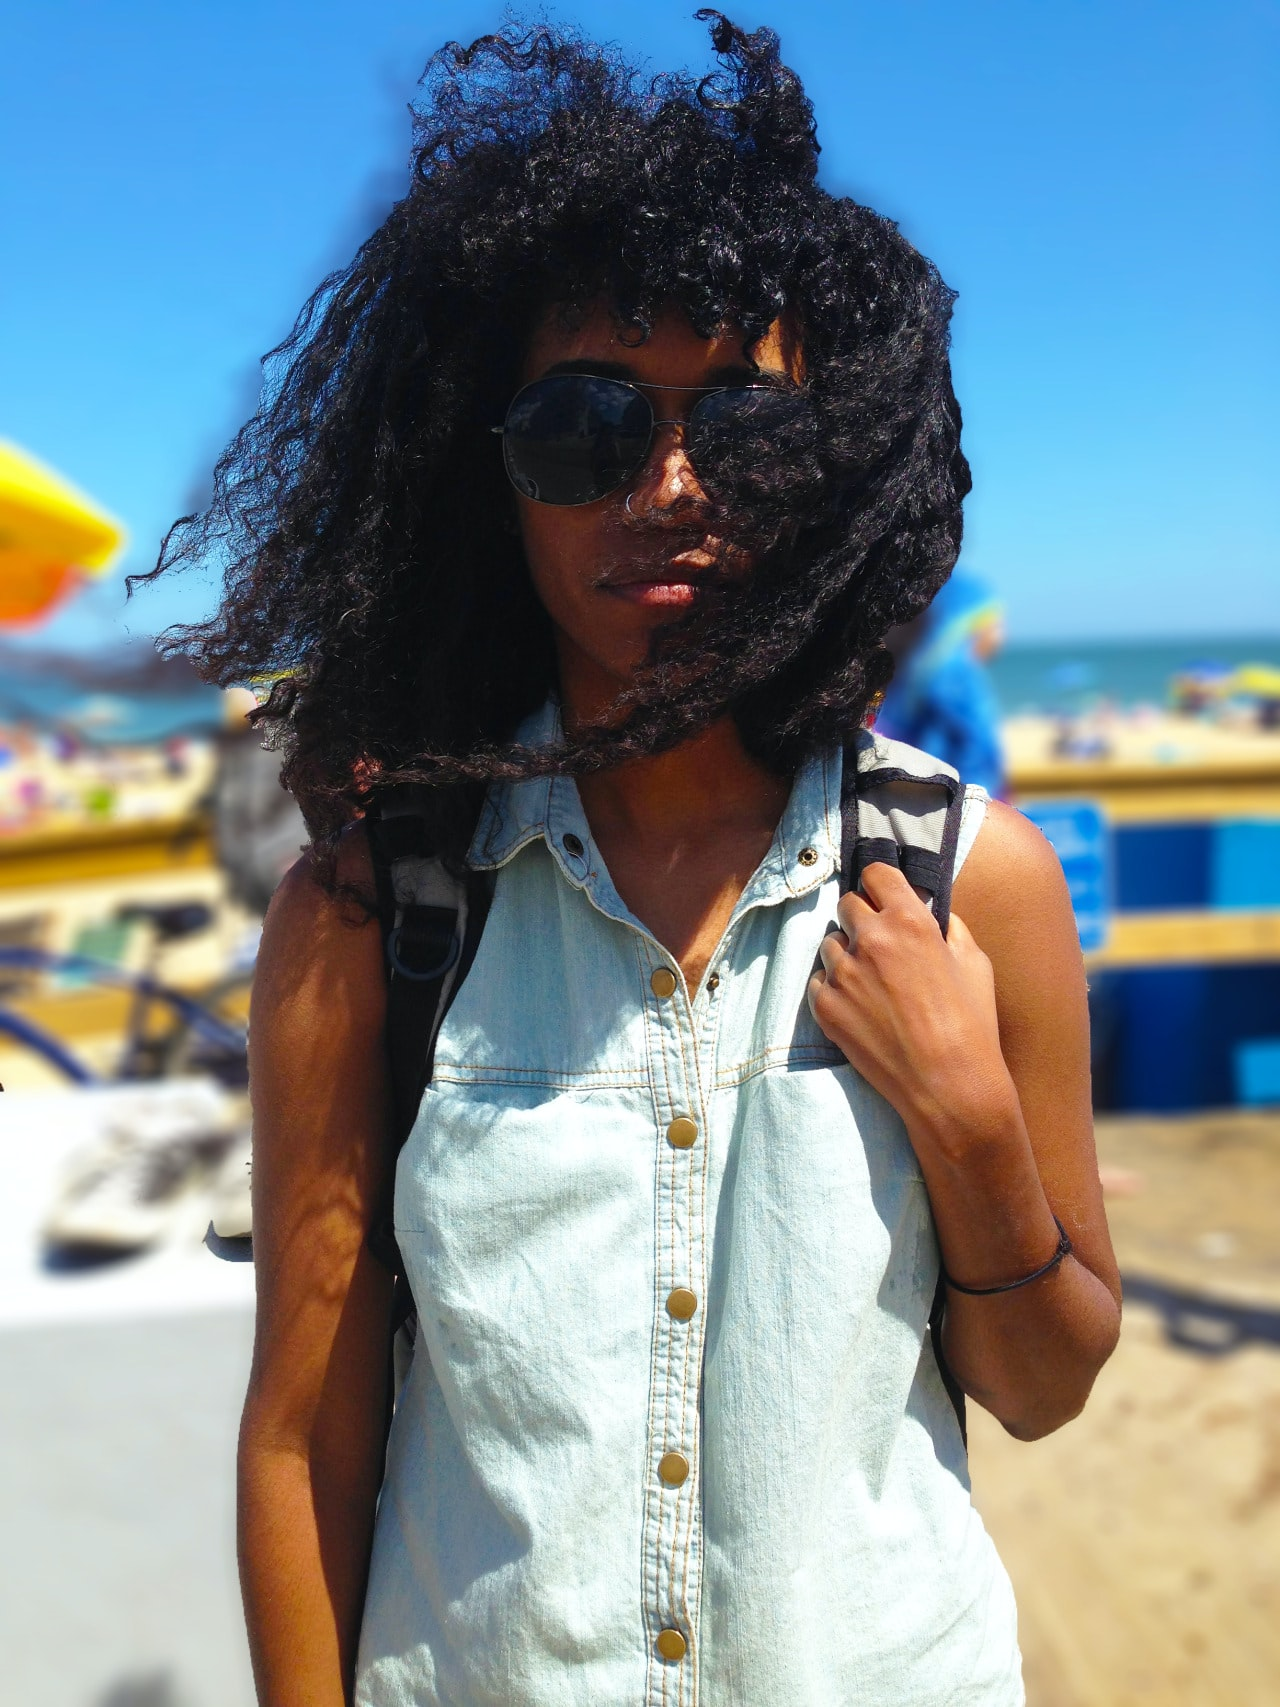 Woman with curly hair, sunglasses, and a jean shirt on a beach in Ocean City, Maryland